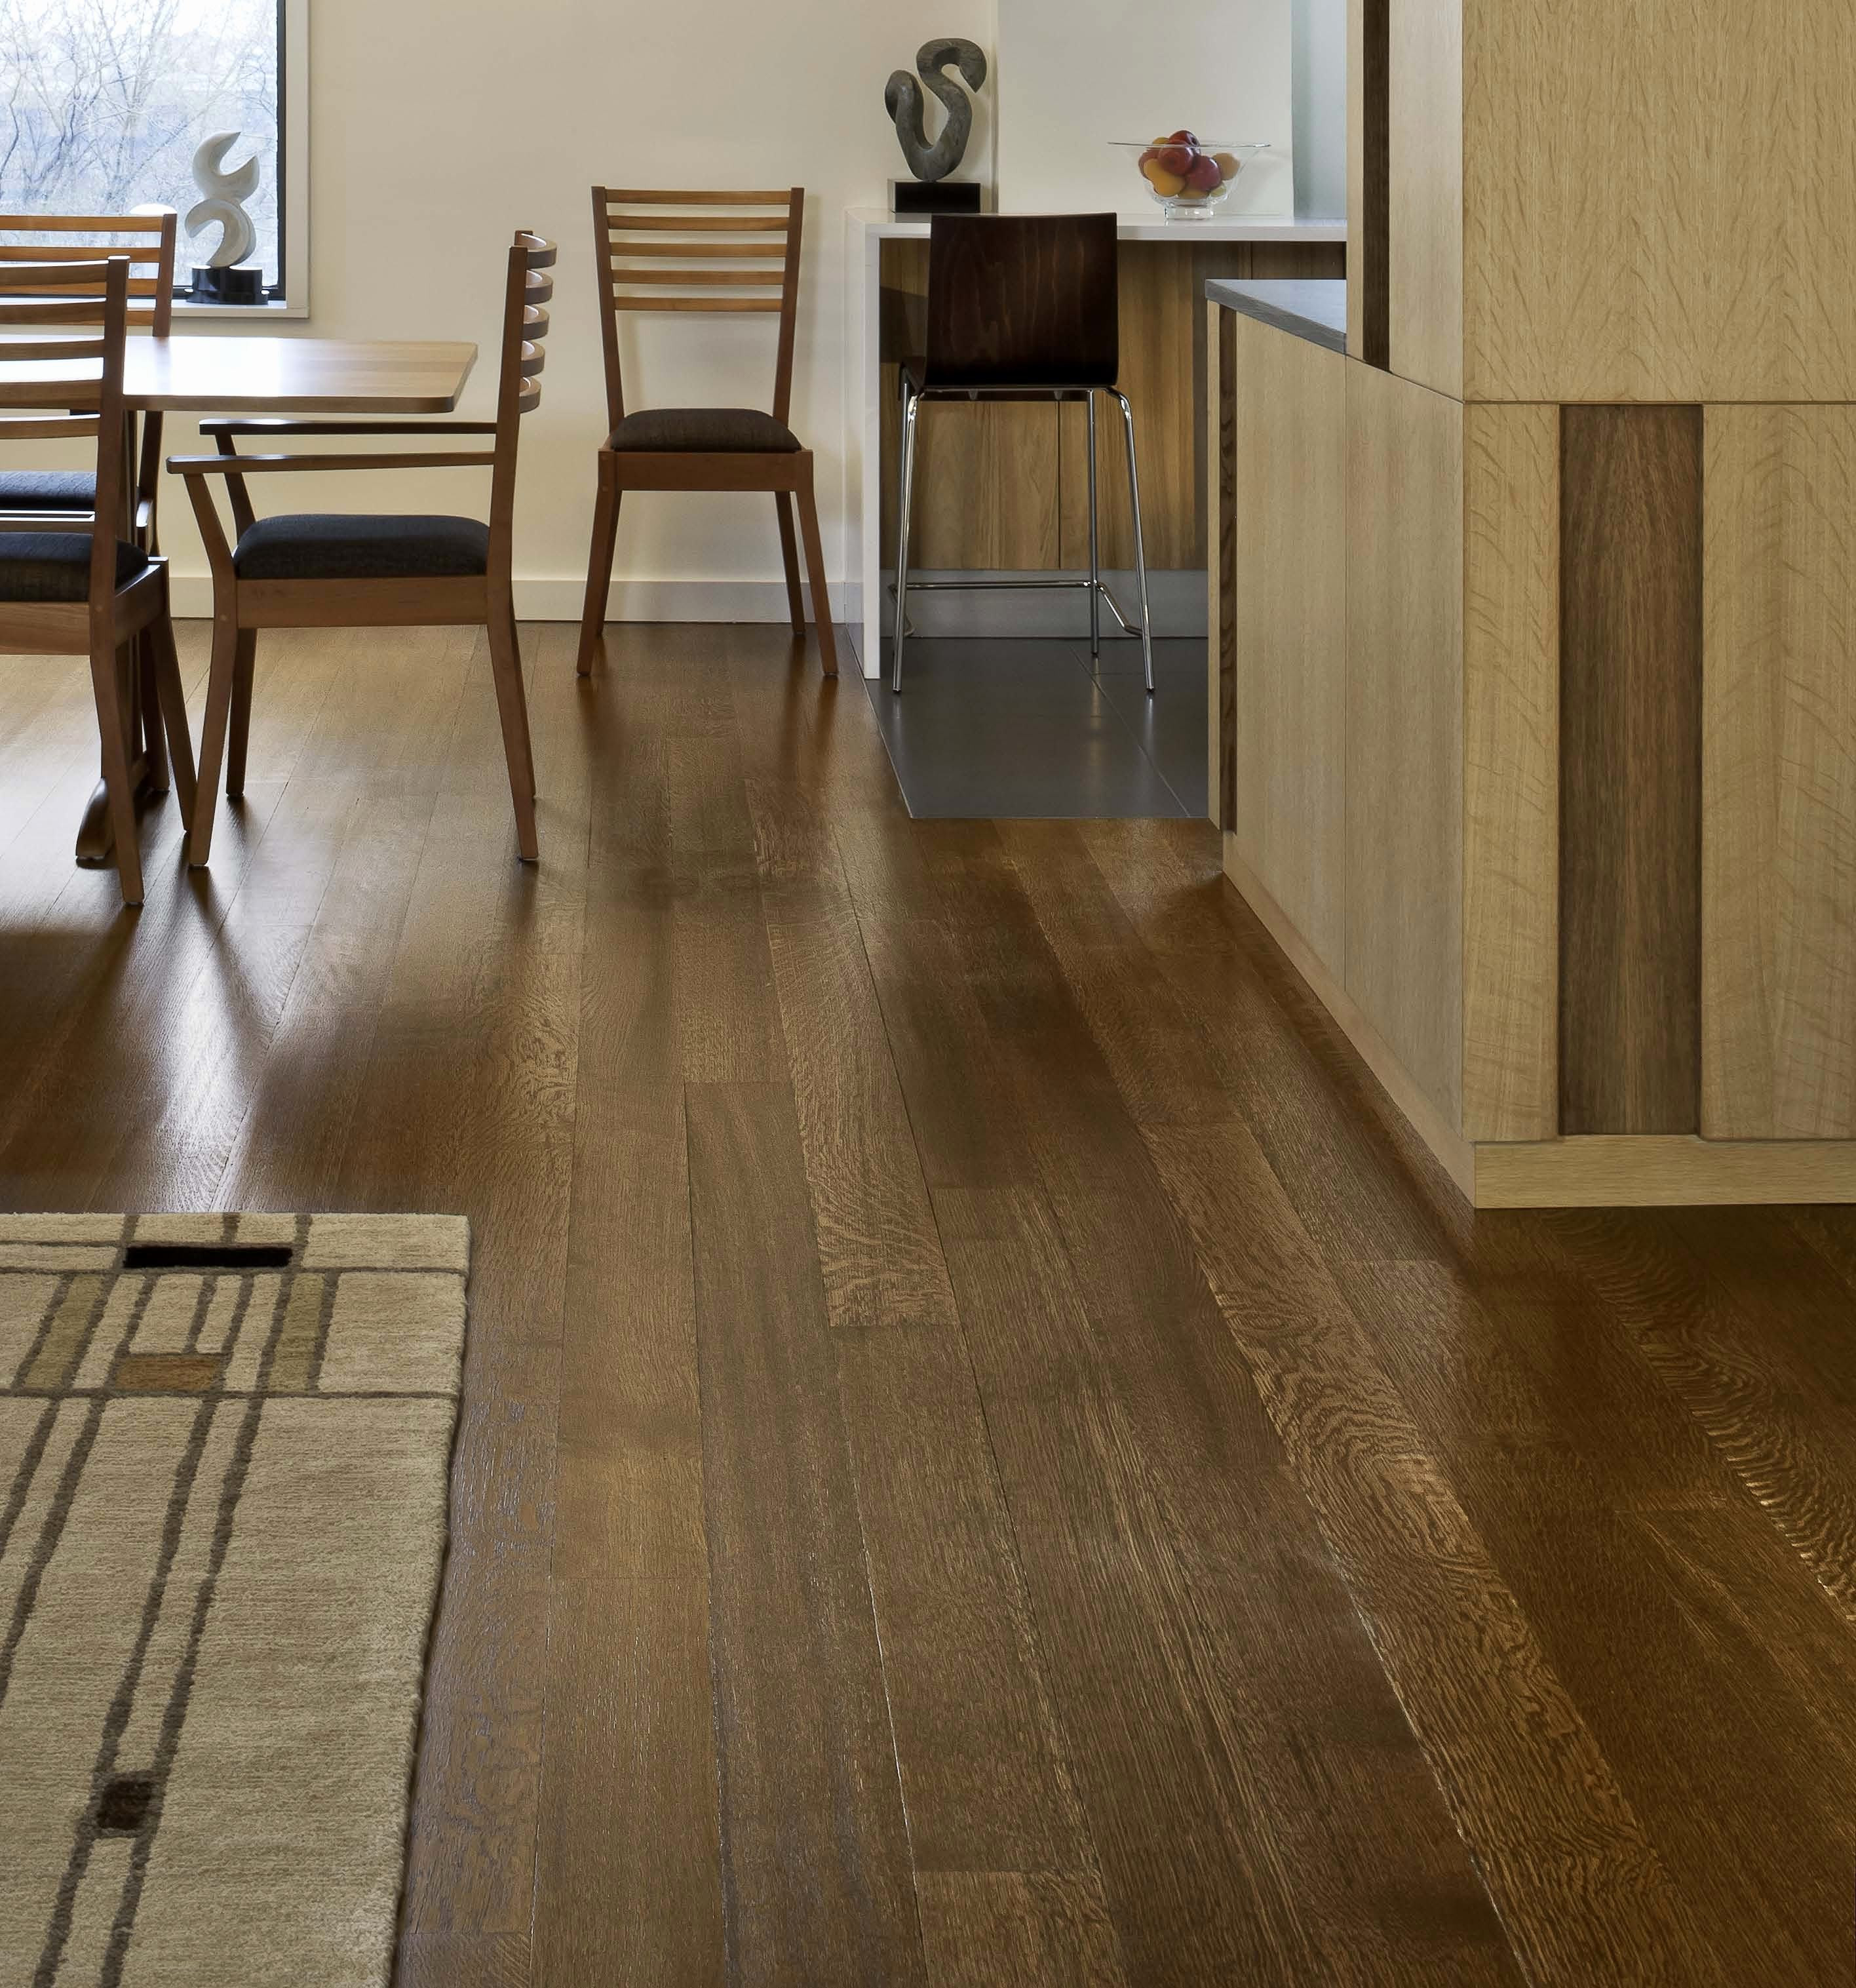 images of hardwood floors of white kitchens with dark wood floors greatest engaging discount in white kitchens with dark wood floors greatest engaging discount hardwood flooring 5 where to buy inspirational